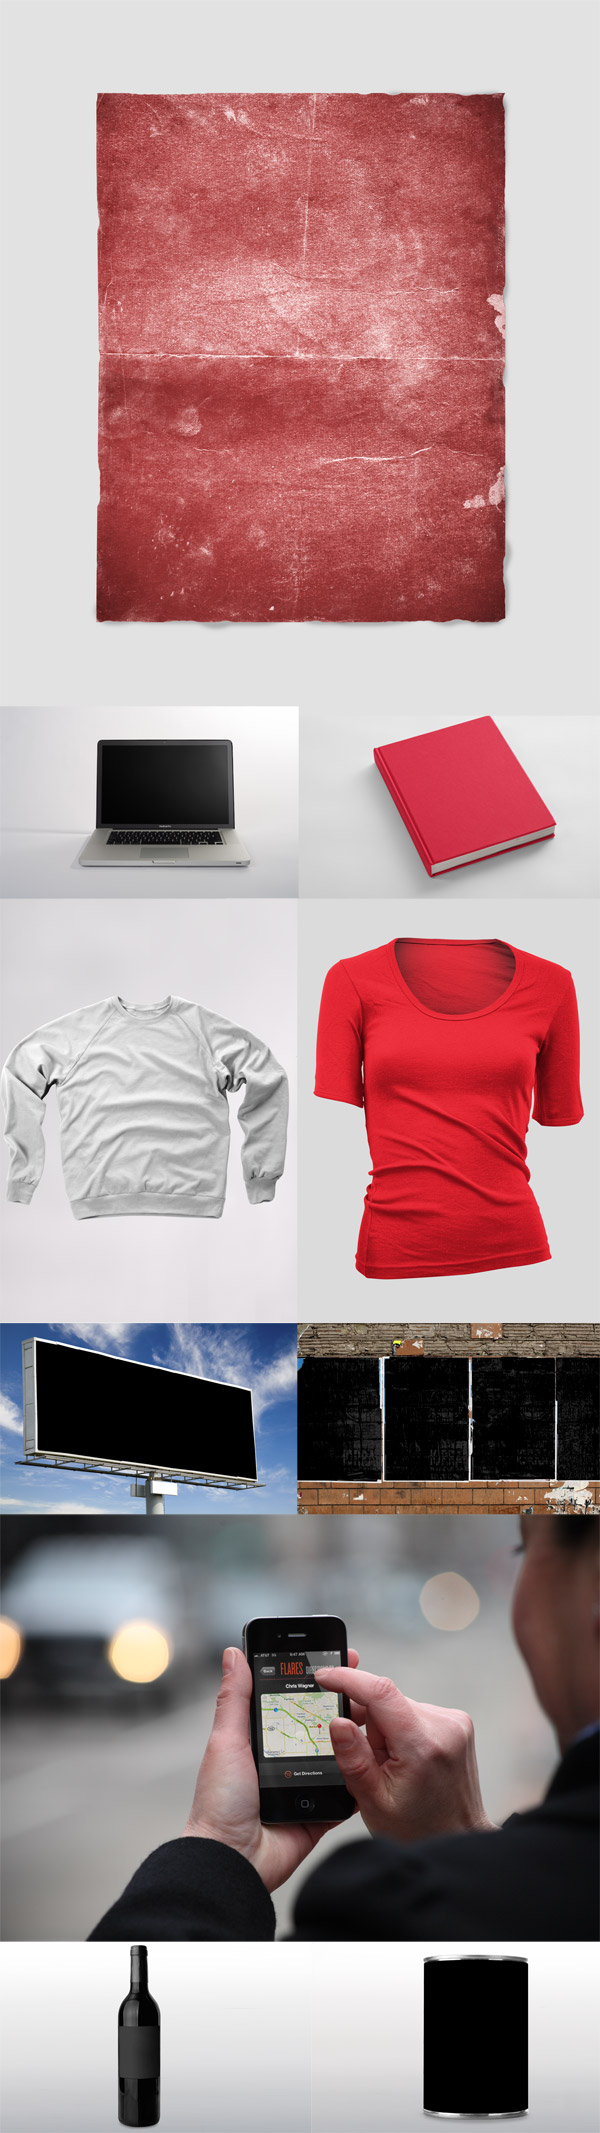 Mockup Everything templates pack